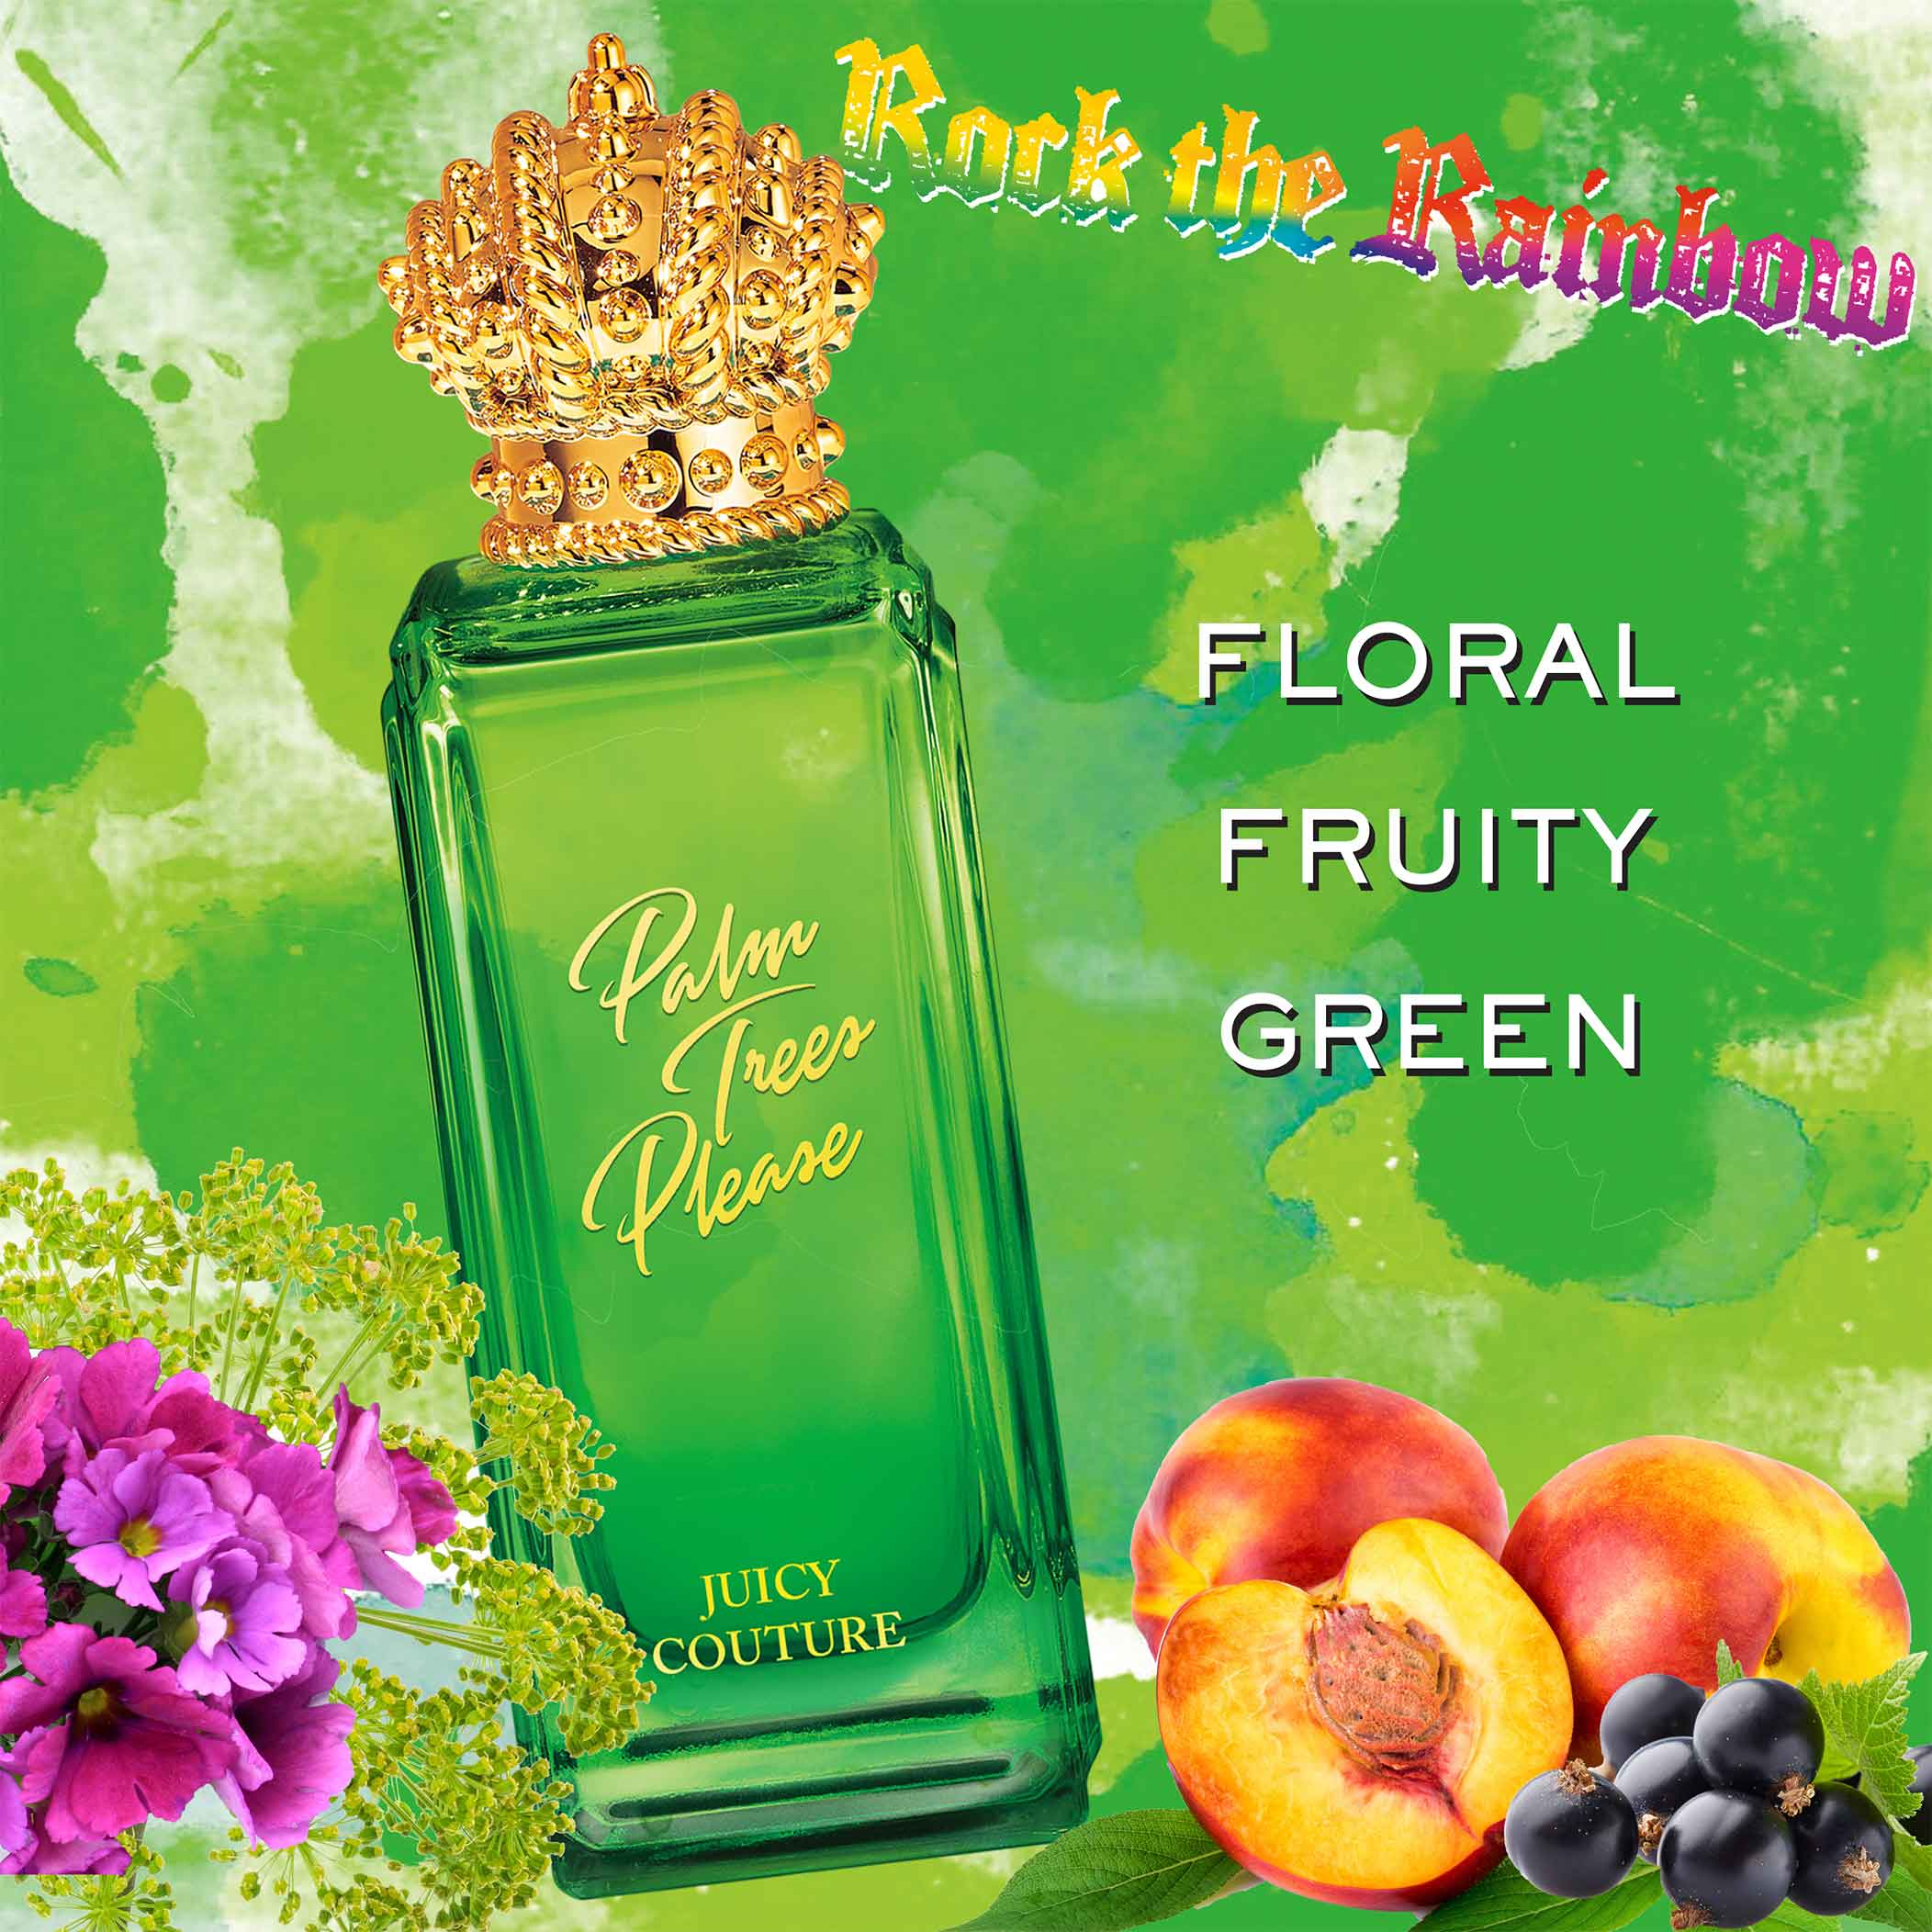 Floral, Fruity, Green